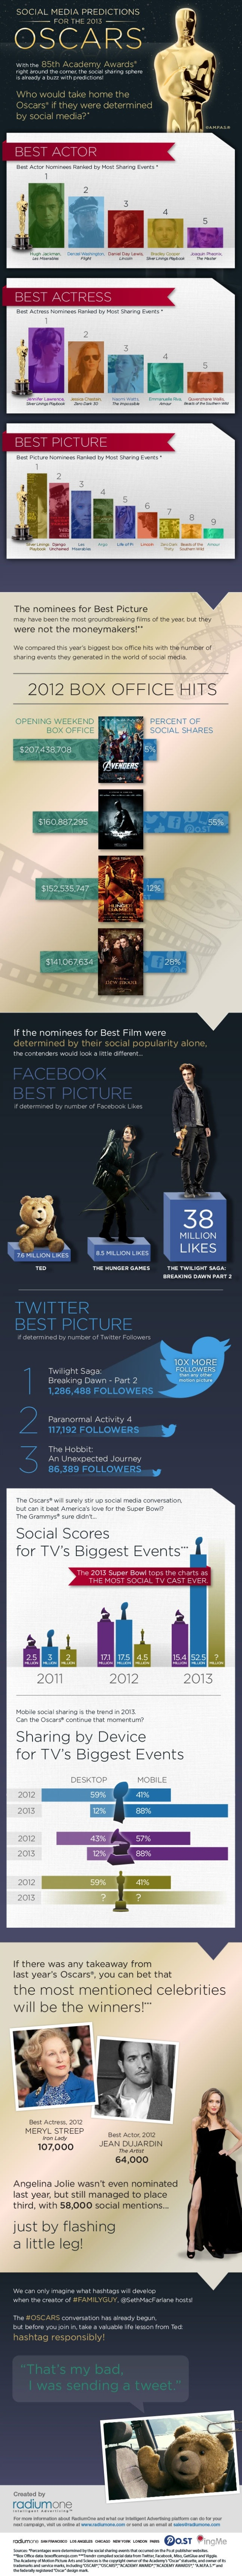 Oscar for Best Film if voted for by Twitter and Facebook users